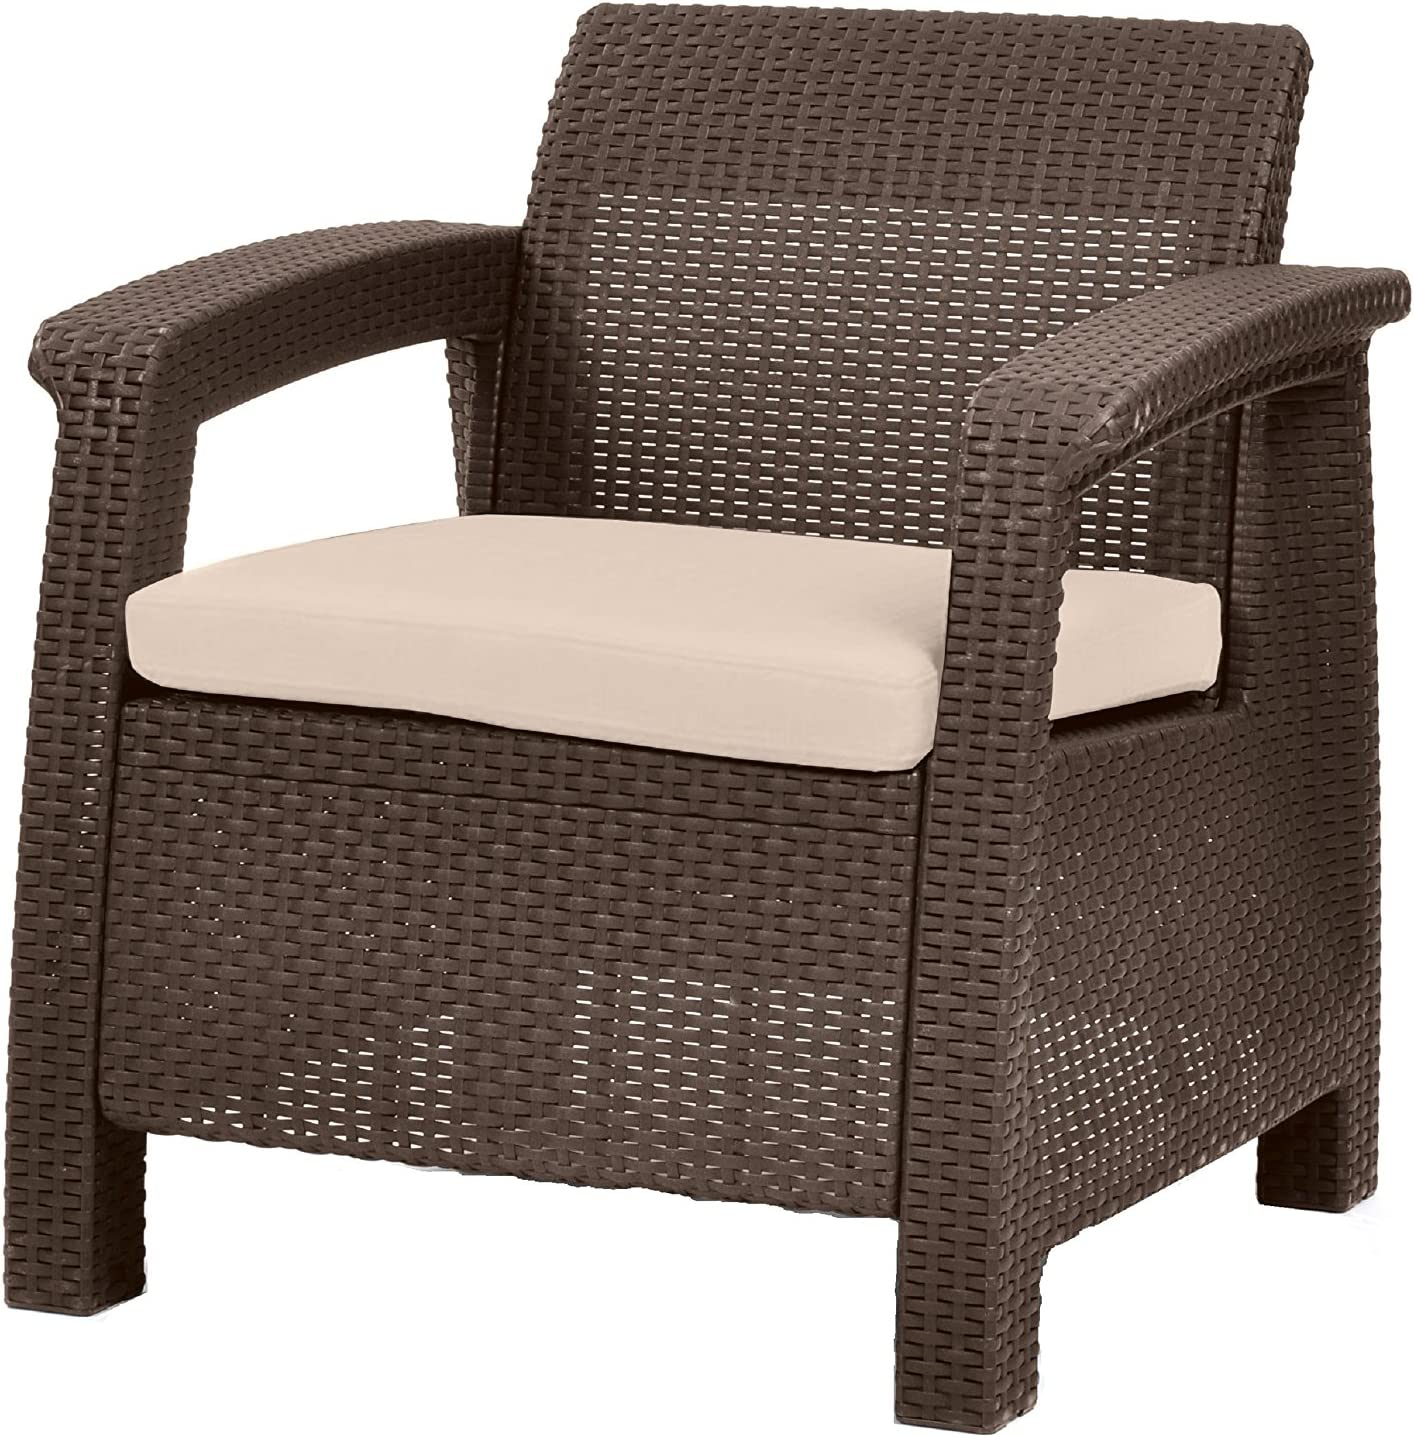 Keter Chair for Outdoor Seating with Washable Cushion - Perfect for Balcony, Deck, and Poolside Furniture Sets, 31 x 27, Brown : Patio Lounge Chairs : Garden & Outdoor